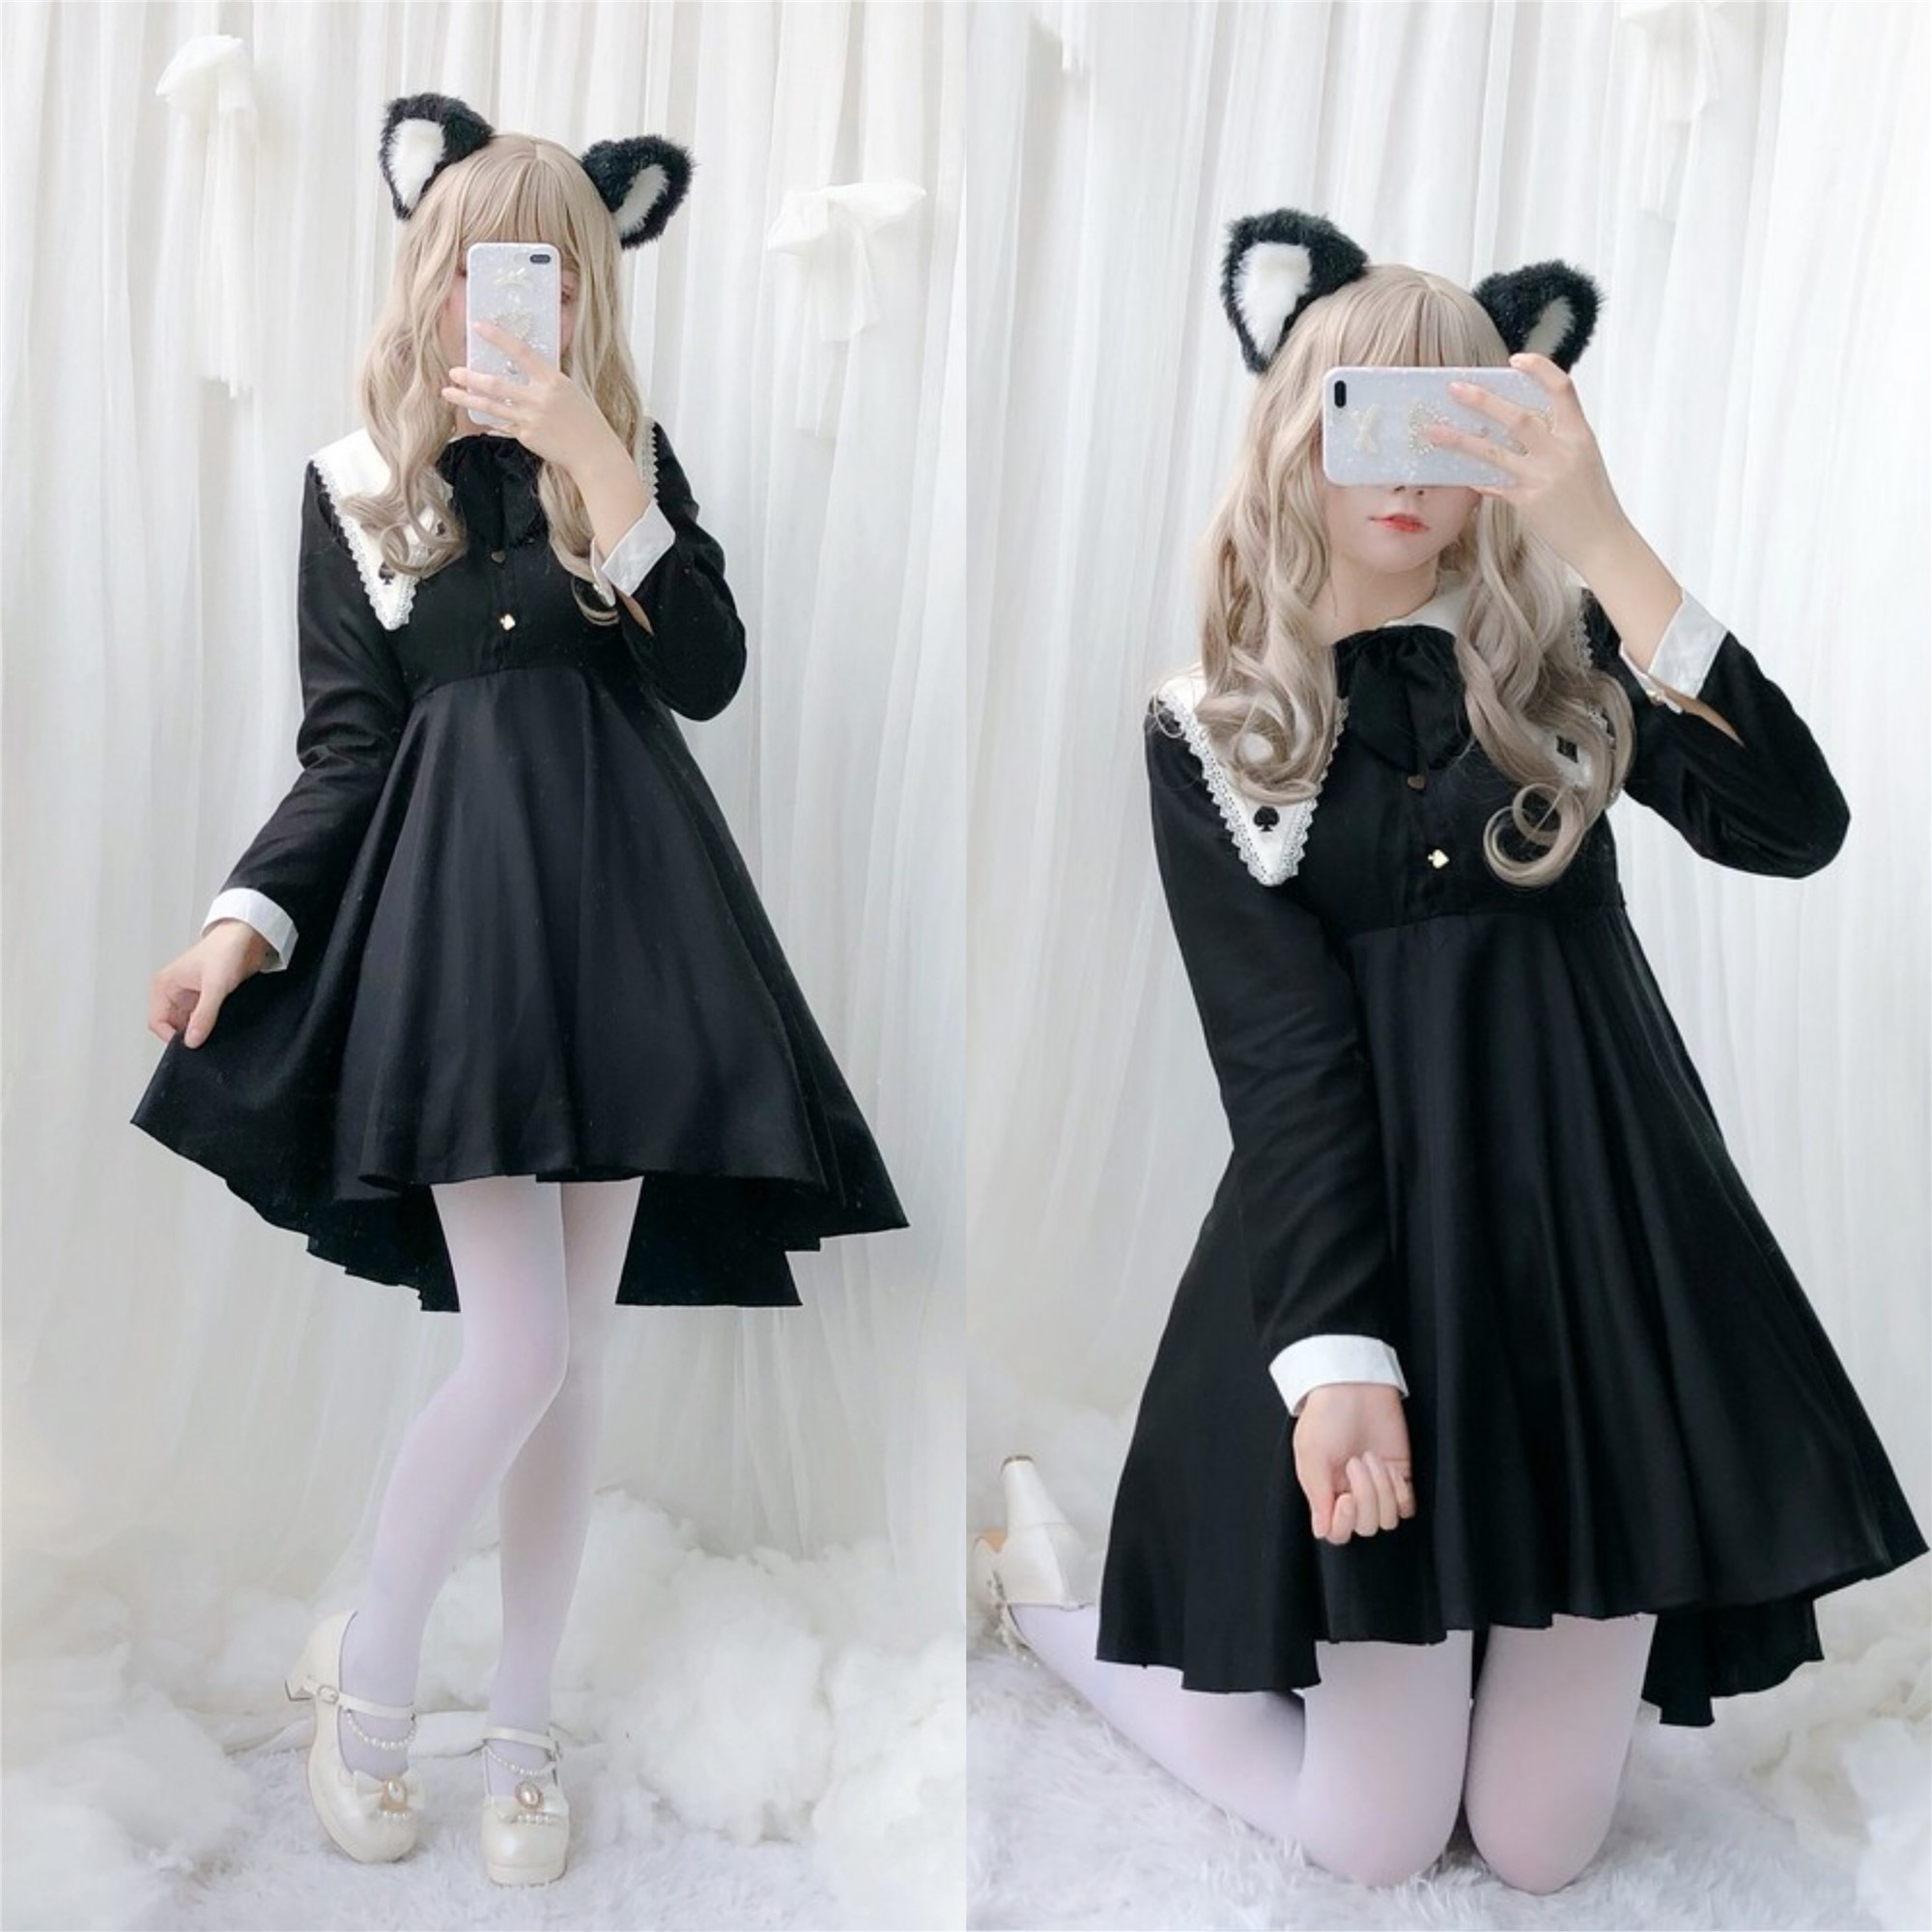 Japanese kawaii girl magician handsome sweet <font><b>lolita</b></font> <font><b>dress</b></font> vintage lace bowknot swallow tail victorian <font><b>dress</b></font> gothic <font><b>lolita</b></font> op cos image